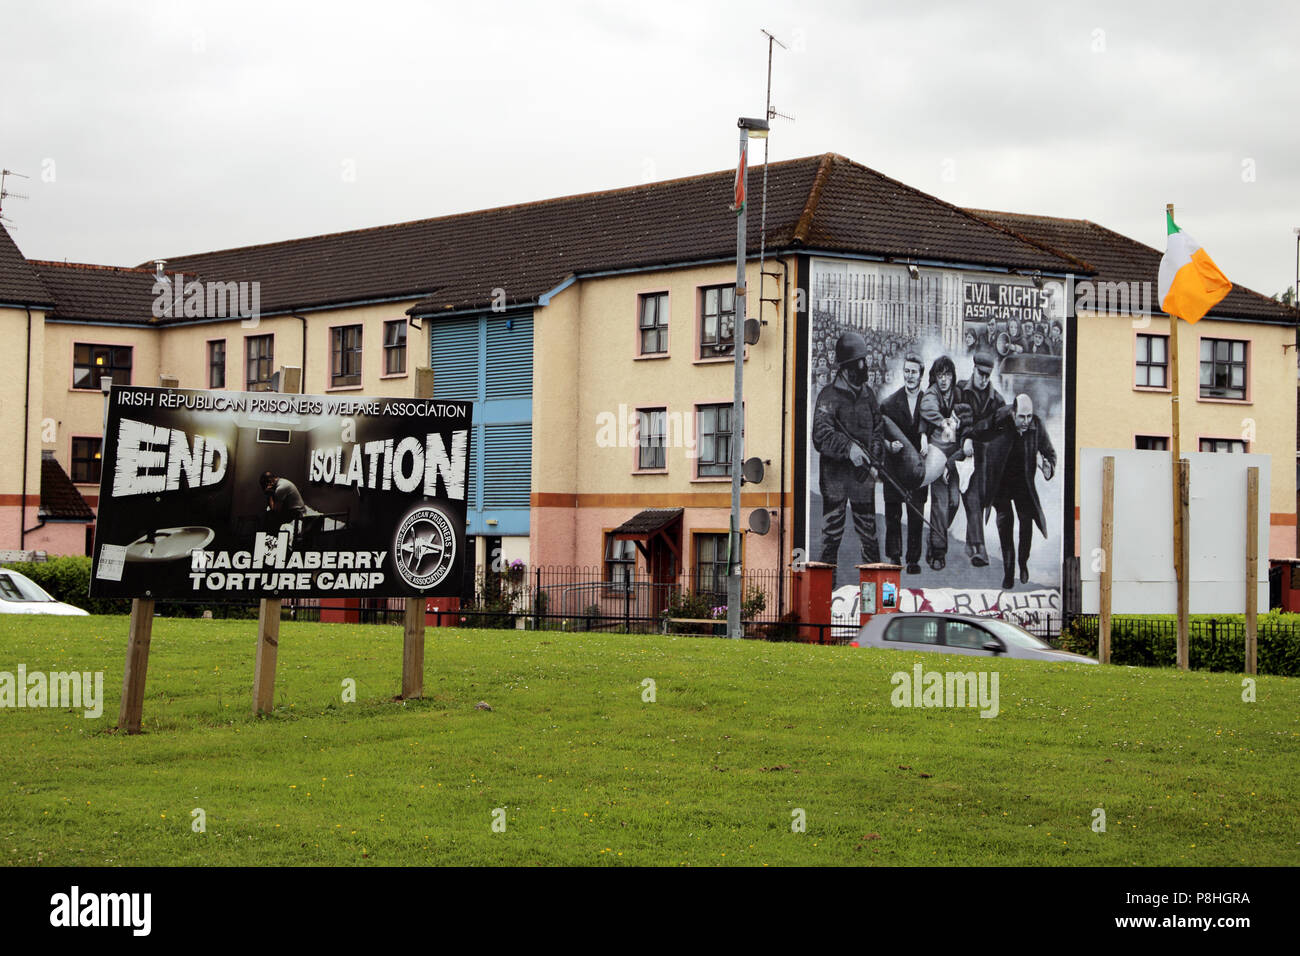 Glennfada Park, site of the Bloody Sunday massacre of January 30, 1972 and murals painted in memorial to that day when British troops killed - Stock Image